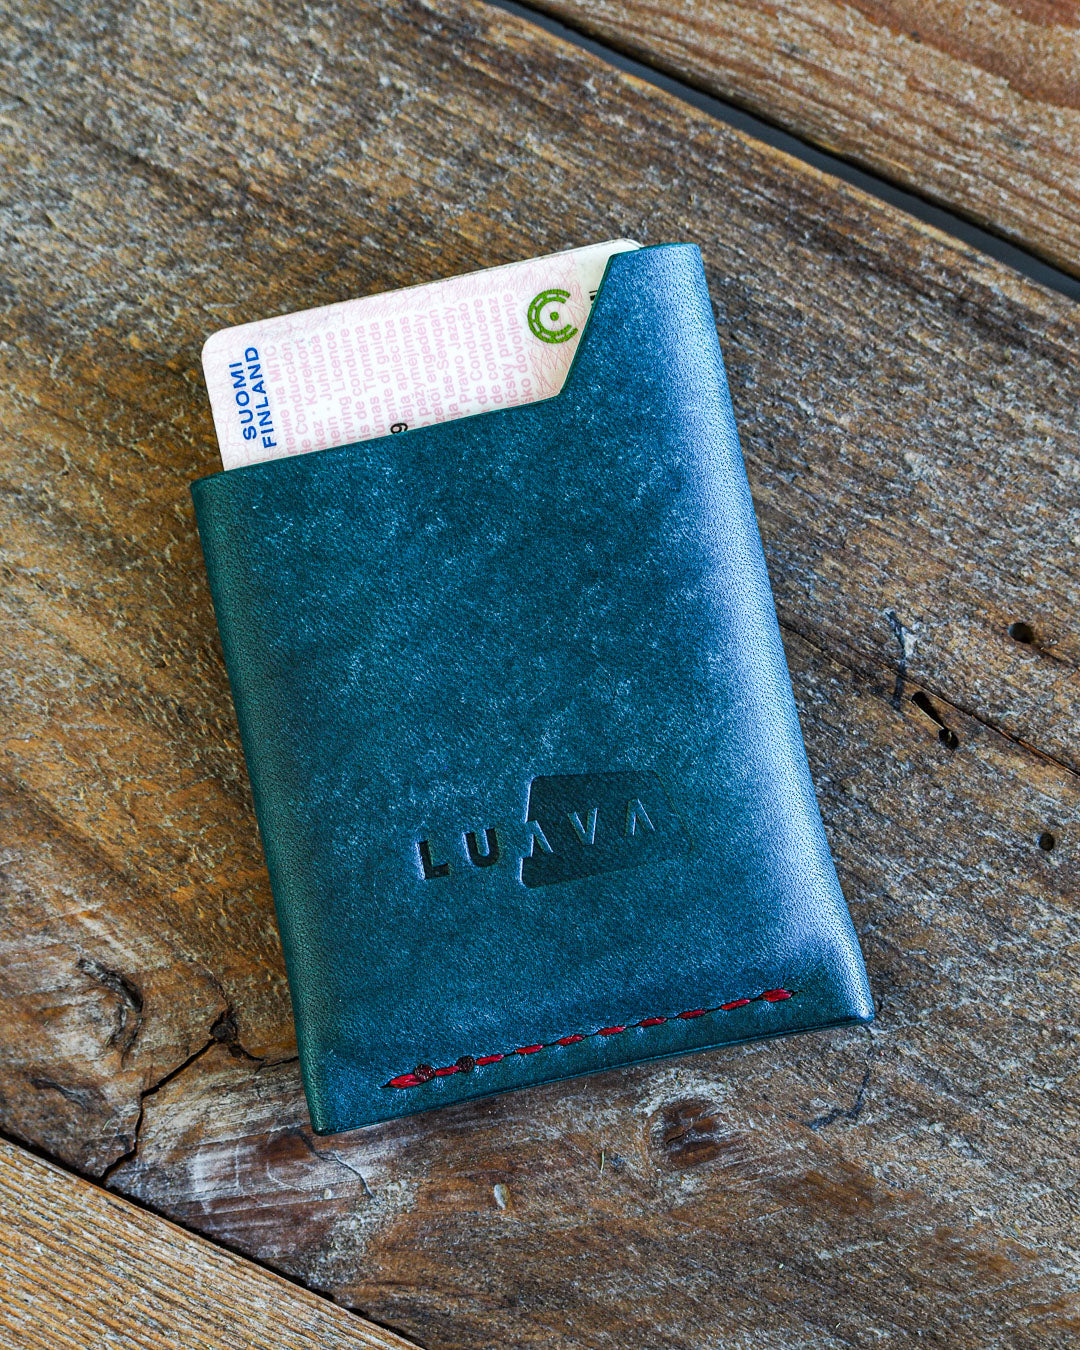 Luava handmade leather wallet handcrafted card holder wrap cardholder made in finland vortex maya turquoise back in use